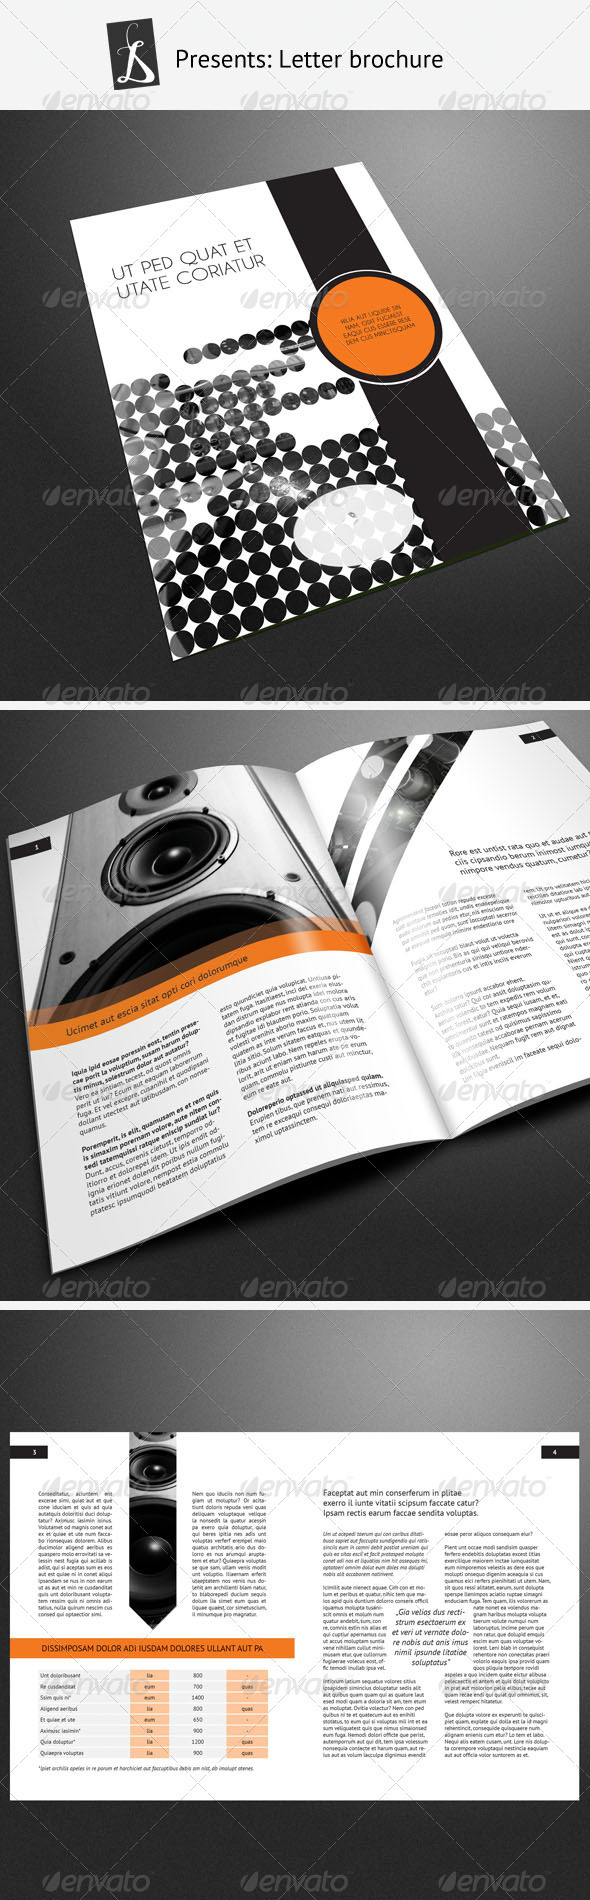 Corporate Brochure 9 - Corporate Brochures